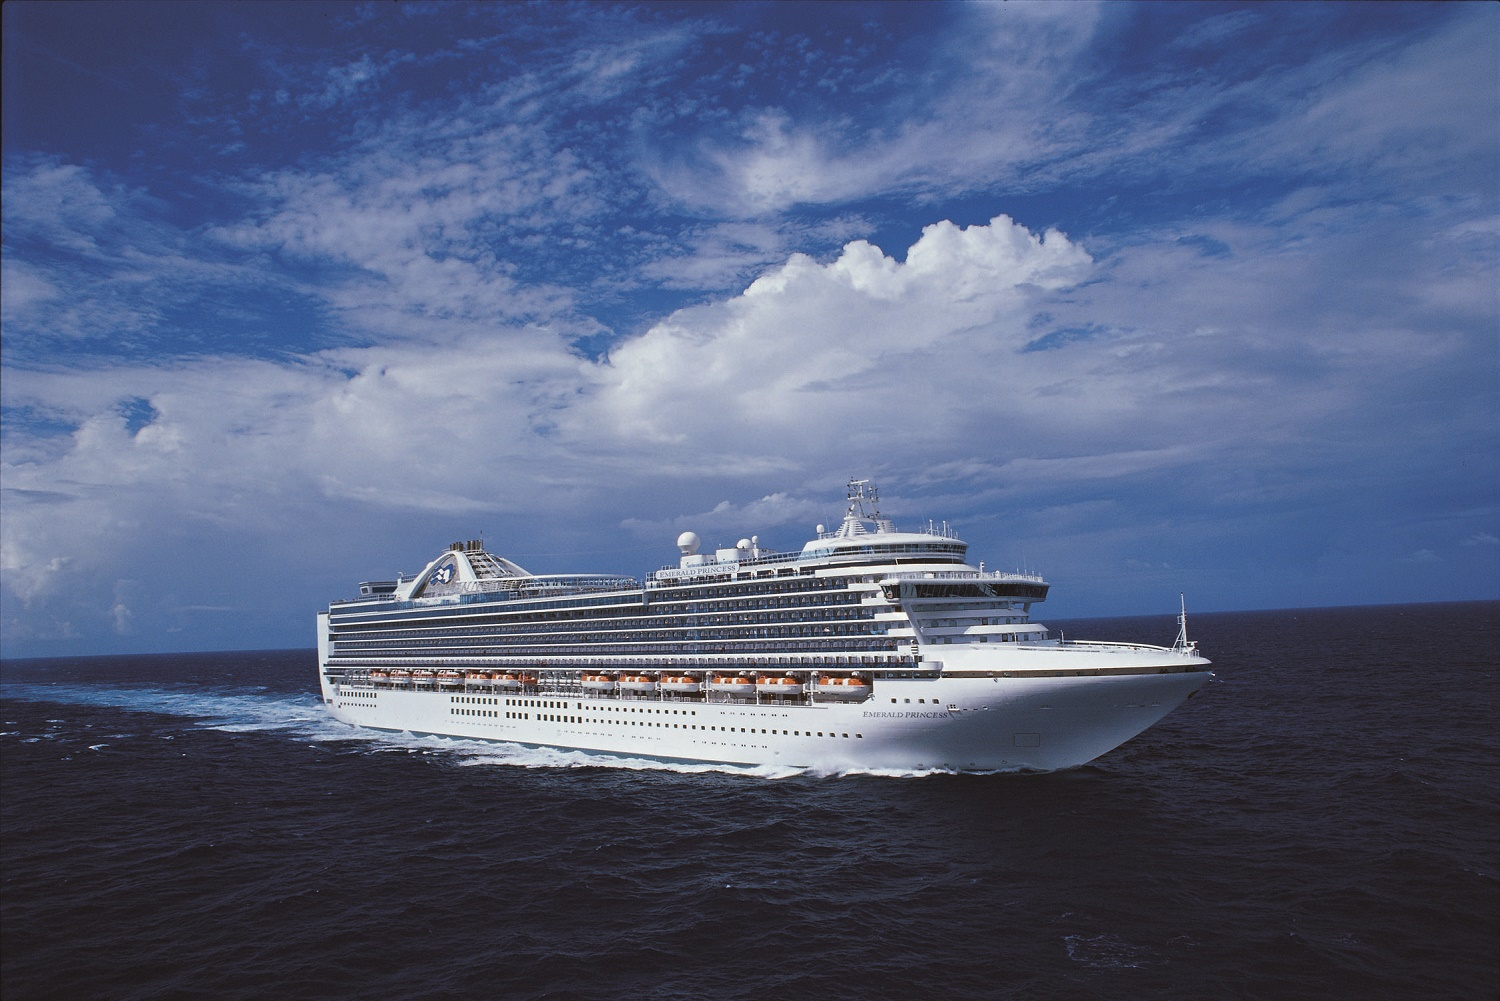 Emerald Princess Cruise Ship Profile - Emerald princess casino